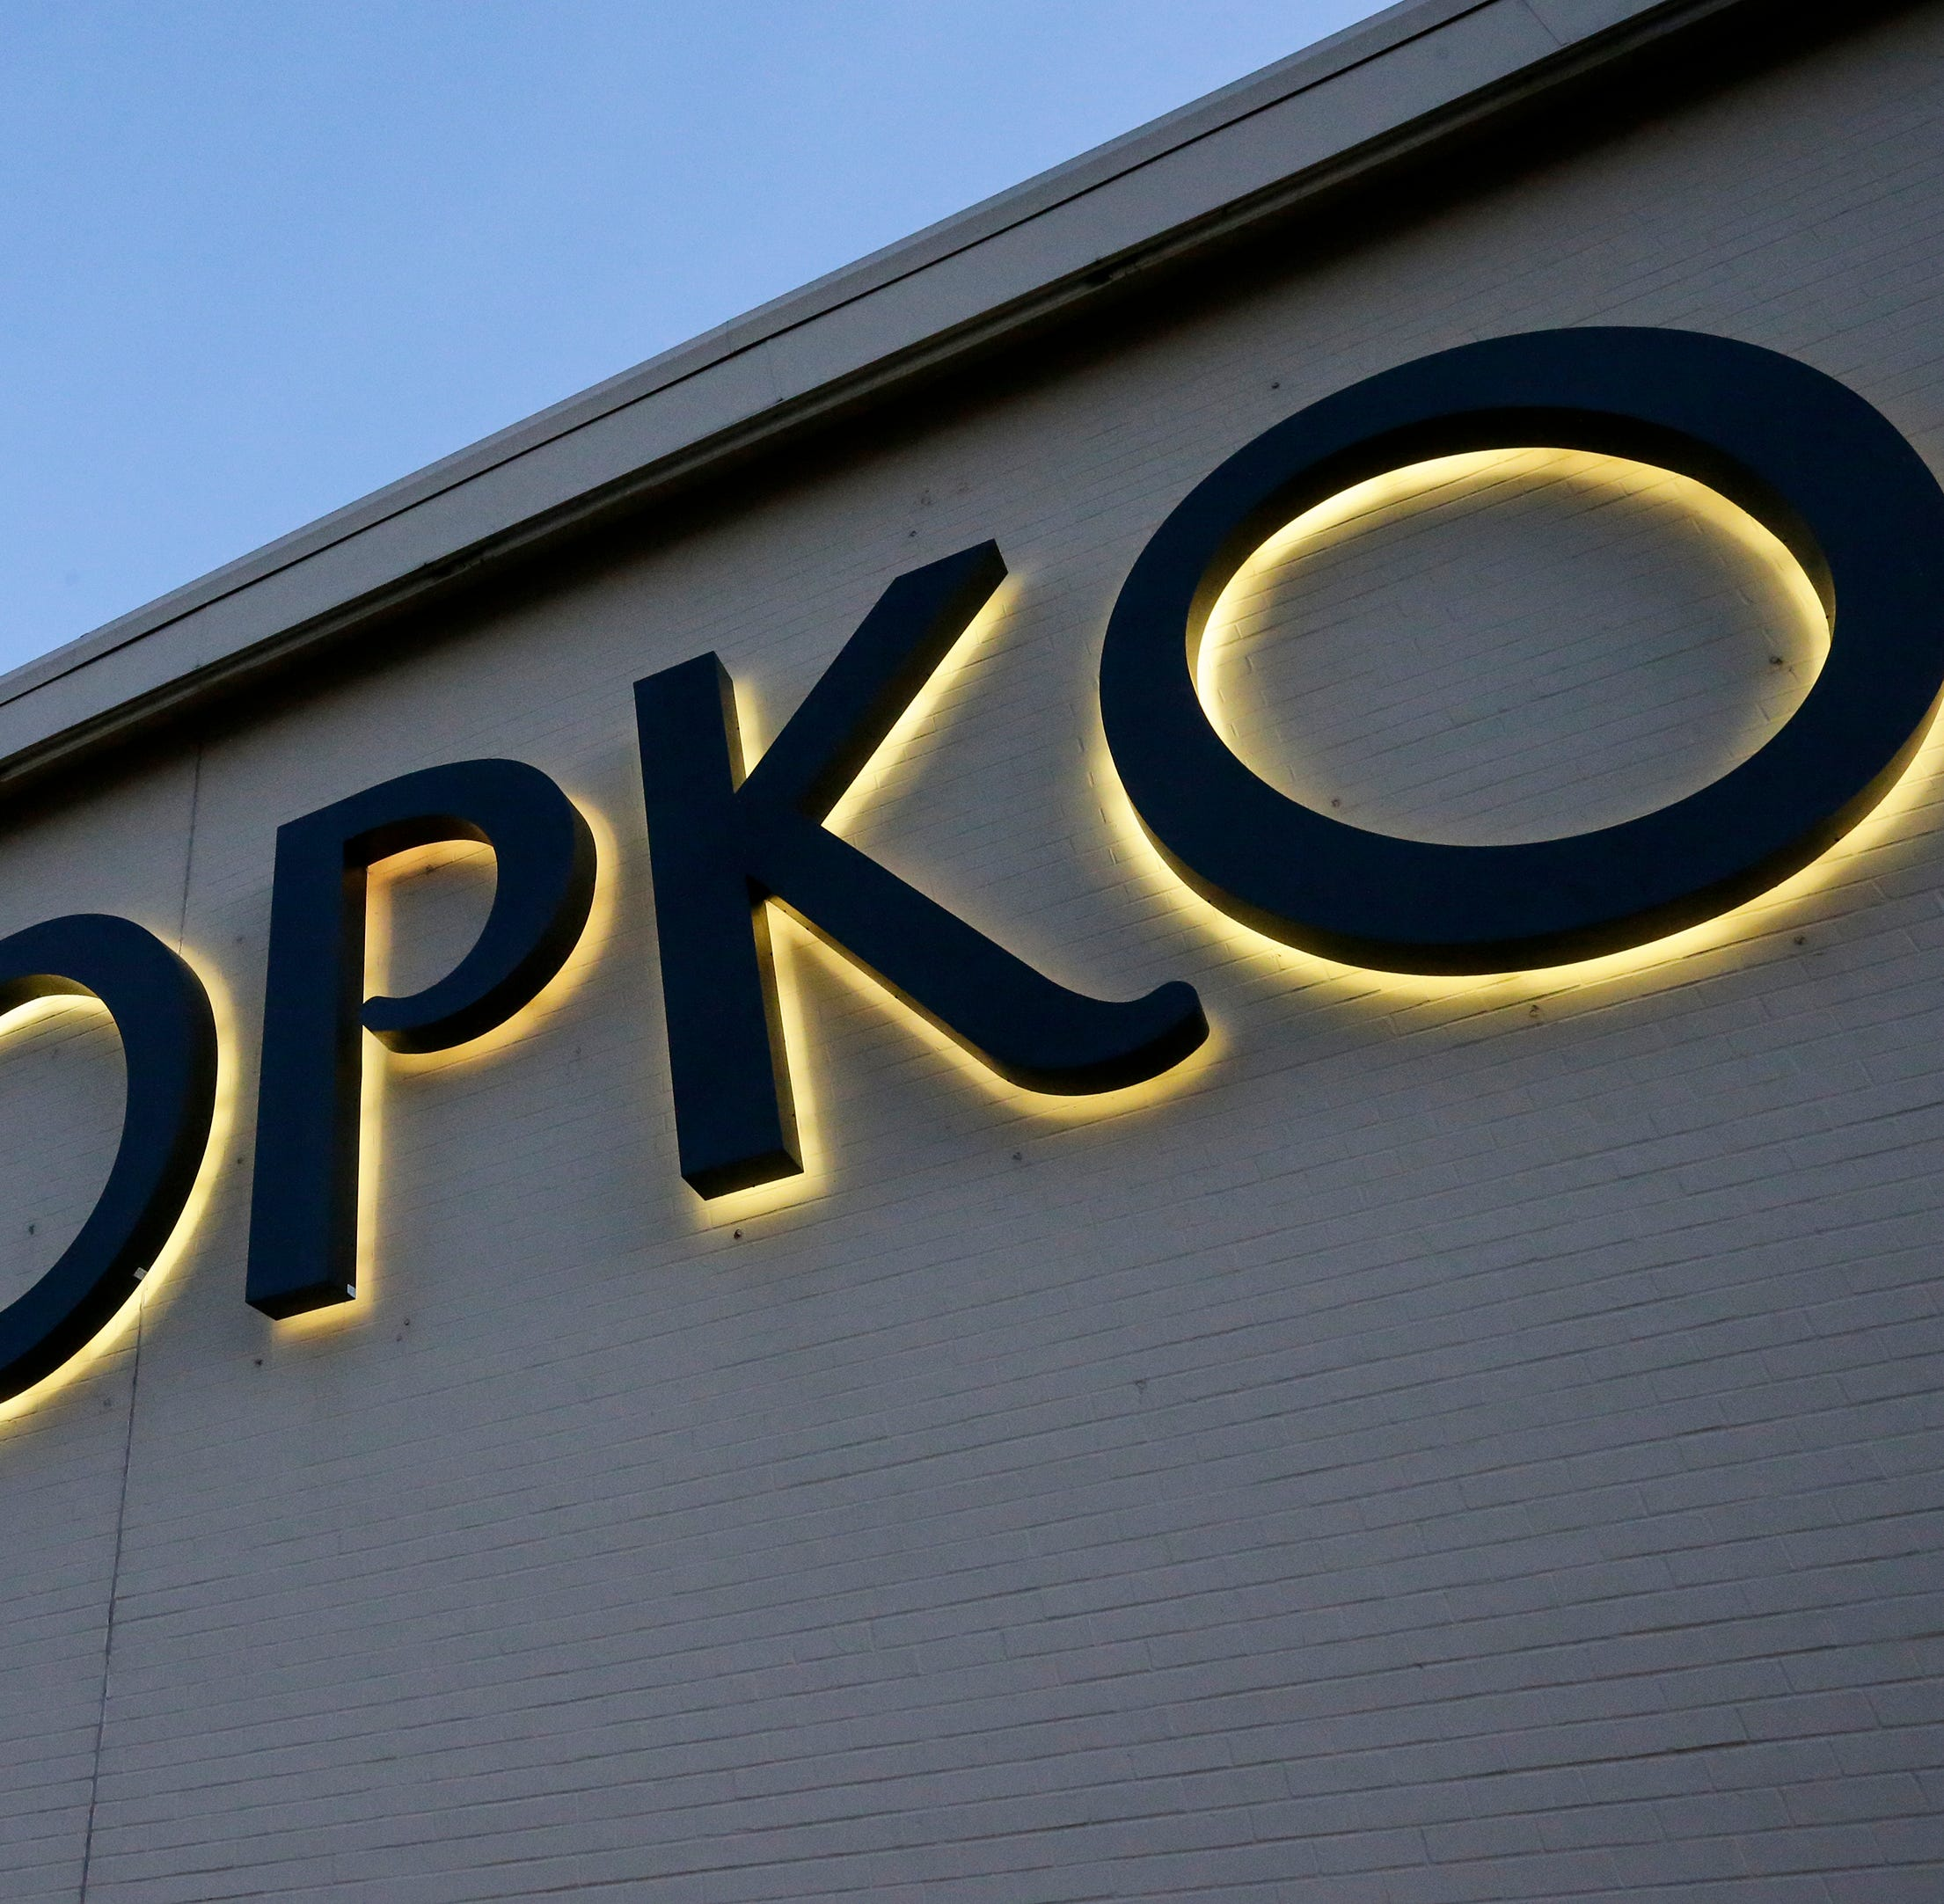 Manitowoc Shopko to close around April 14, 53 workers will lose jobs